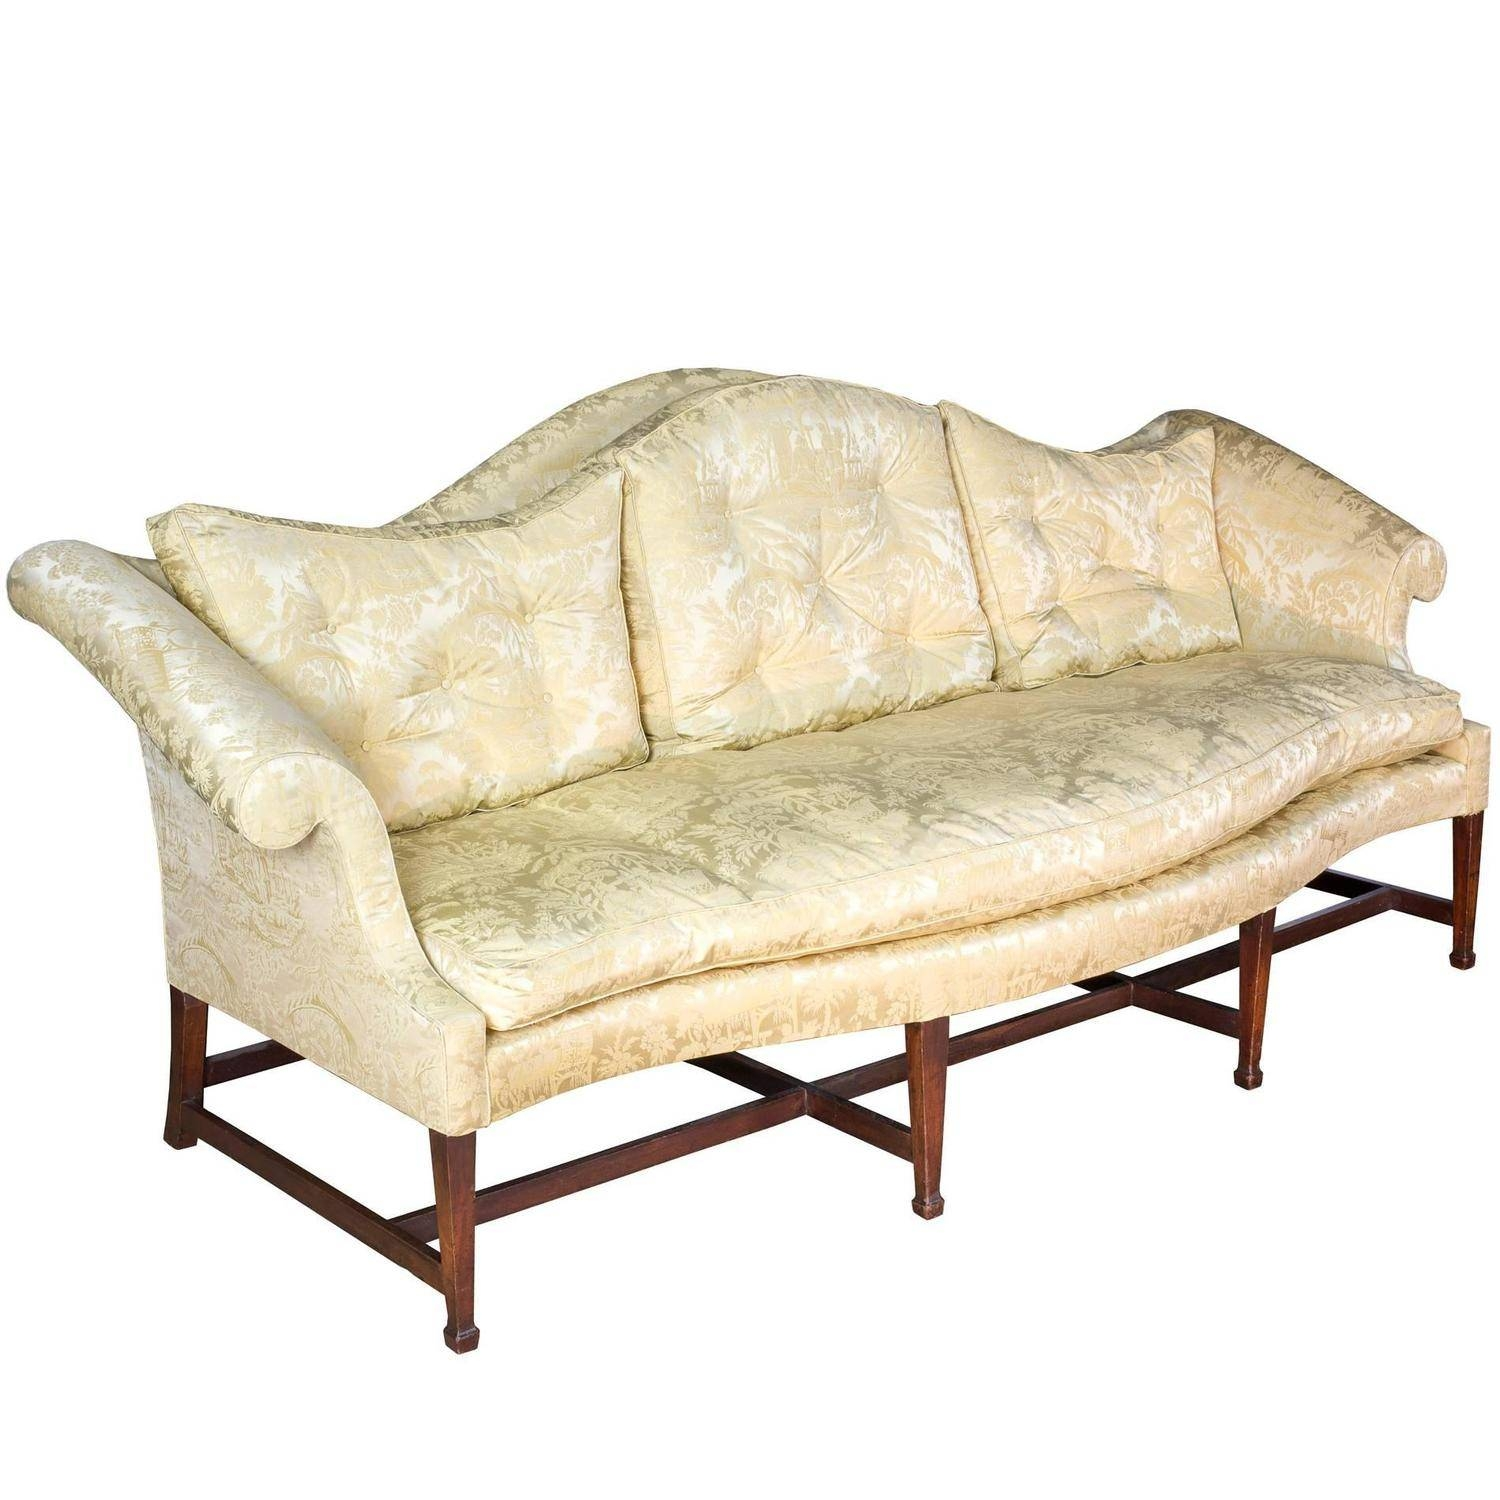 Mahogany Hepplewhite Camelback Sofa With Serpentine Back And Seat with Chippendale Camelback Sofas (Image 15 of 15)